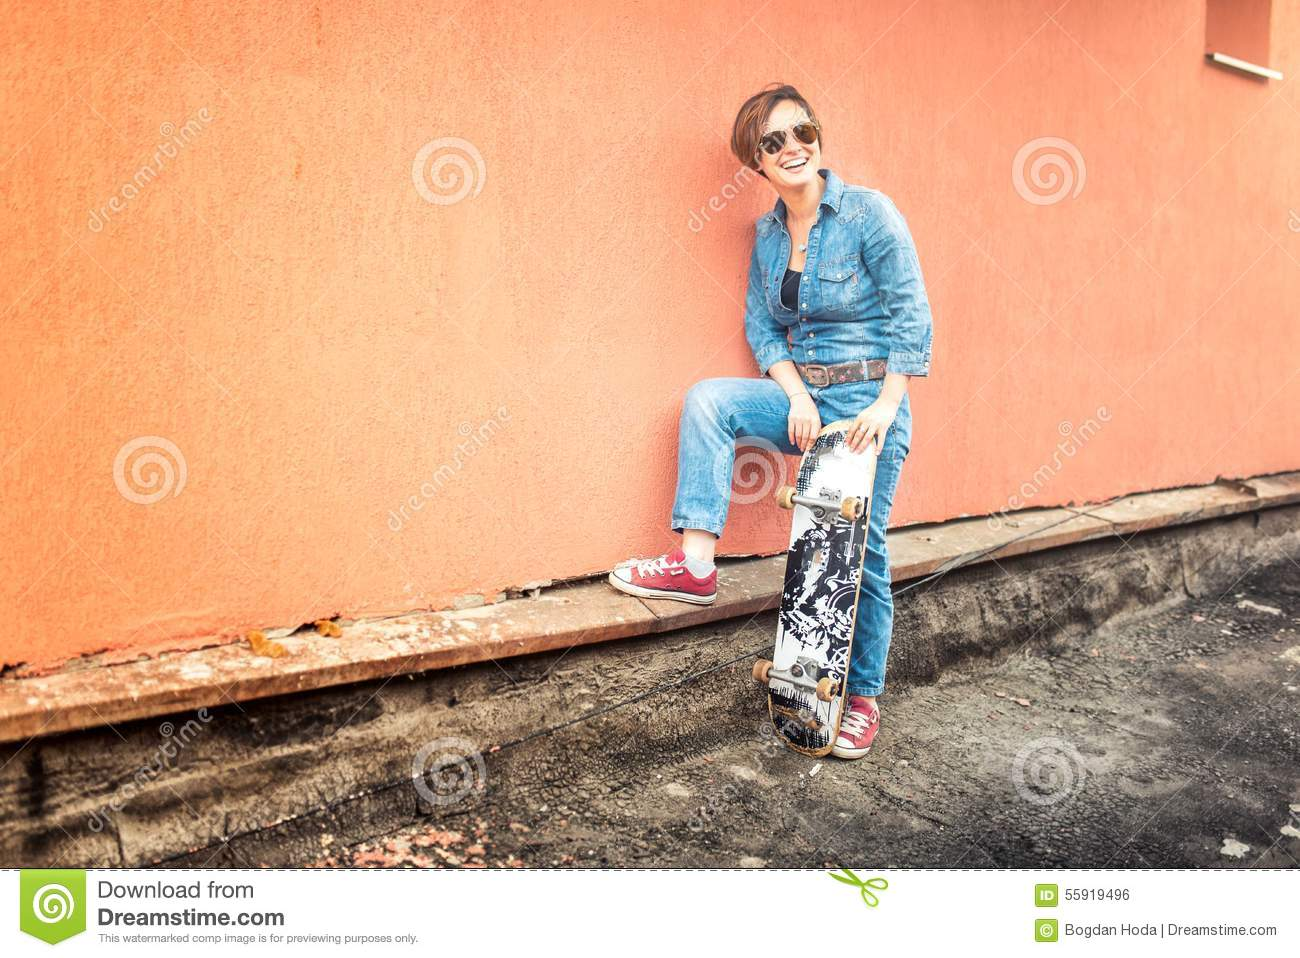 Girl with skateboard and sunglasses living an urban lifestyle. Hipster concept with young woman and skateboard, instagram filter